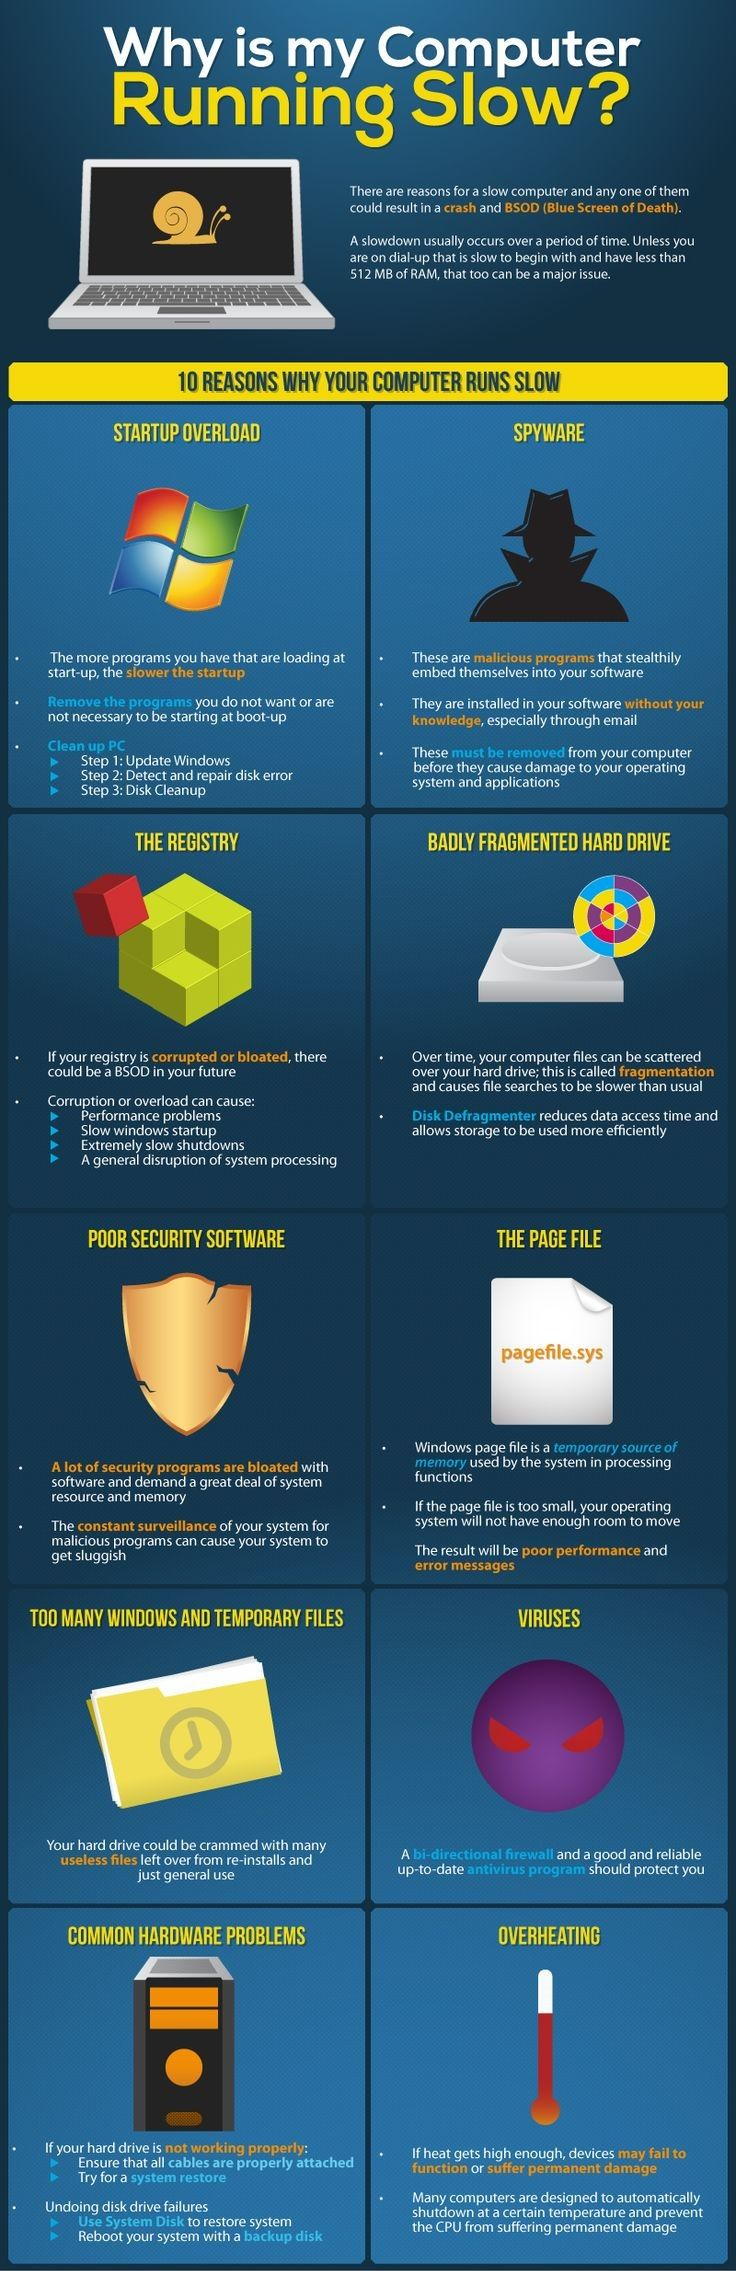 #Infographic: Why is My #Computer Running Slow? - #Mobile #ComputerRepair Blog